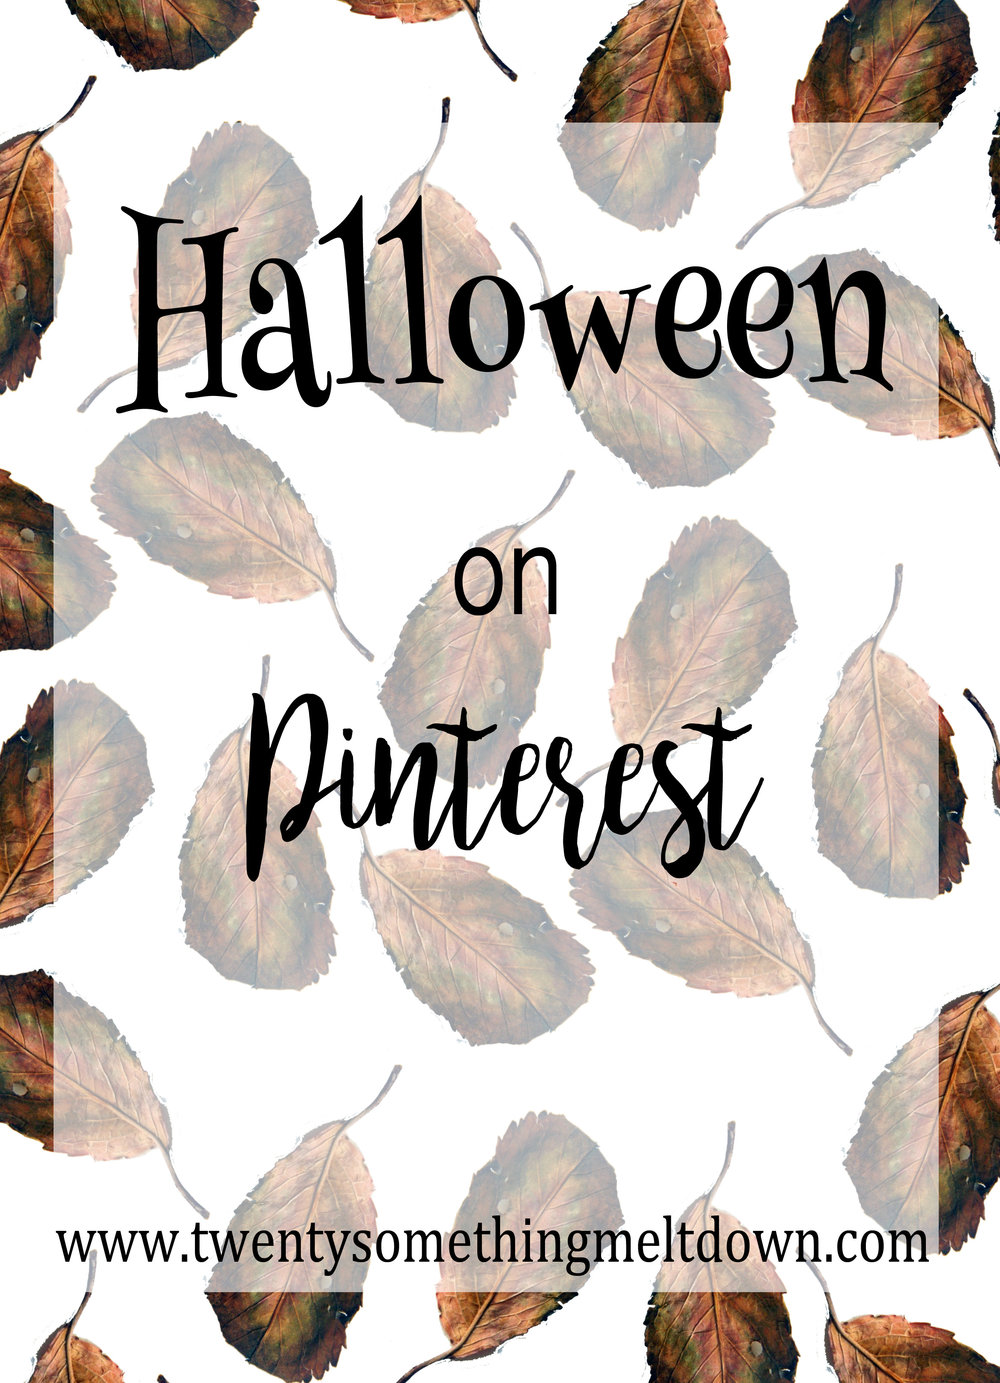 Follow me on Pinterest here!